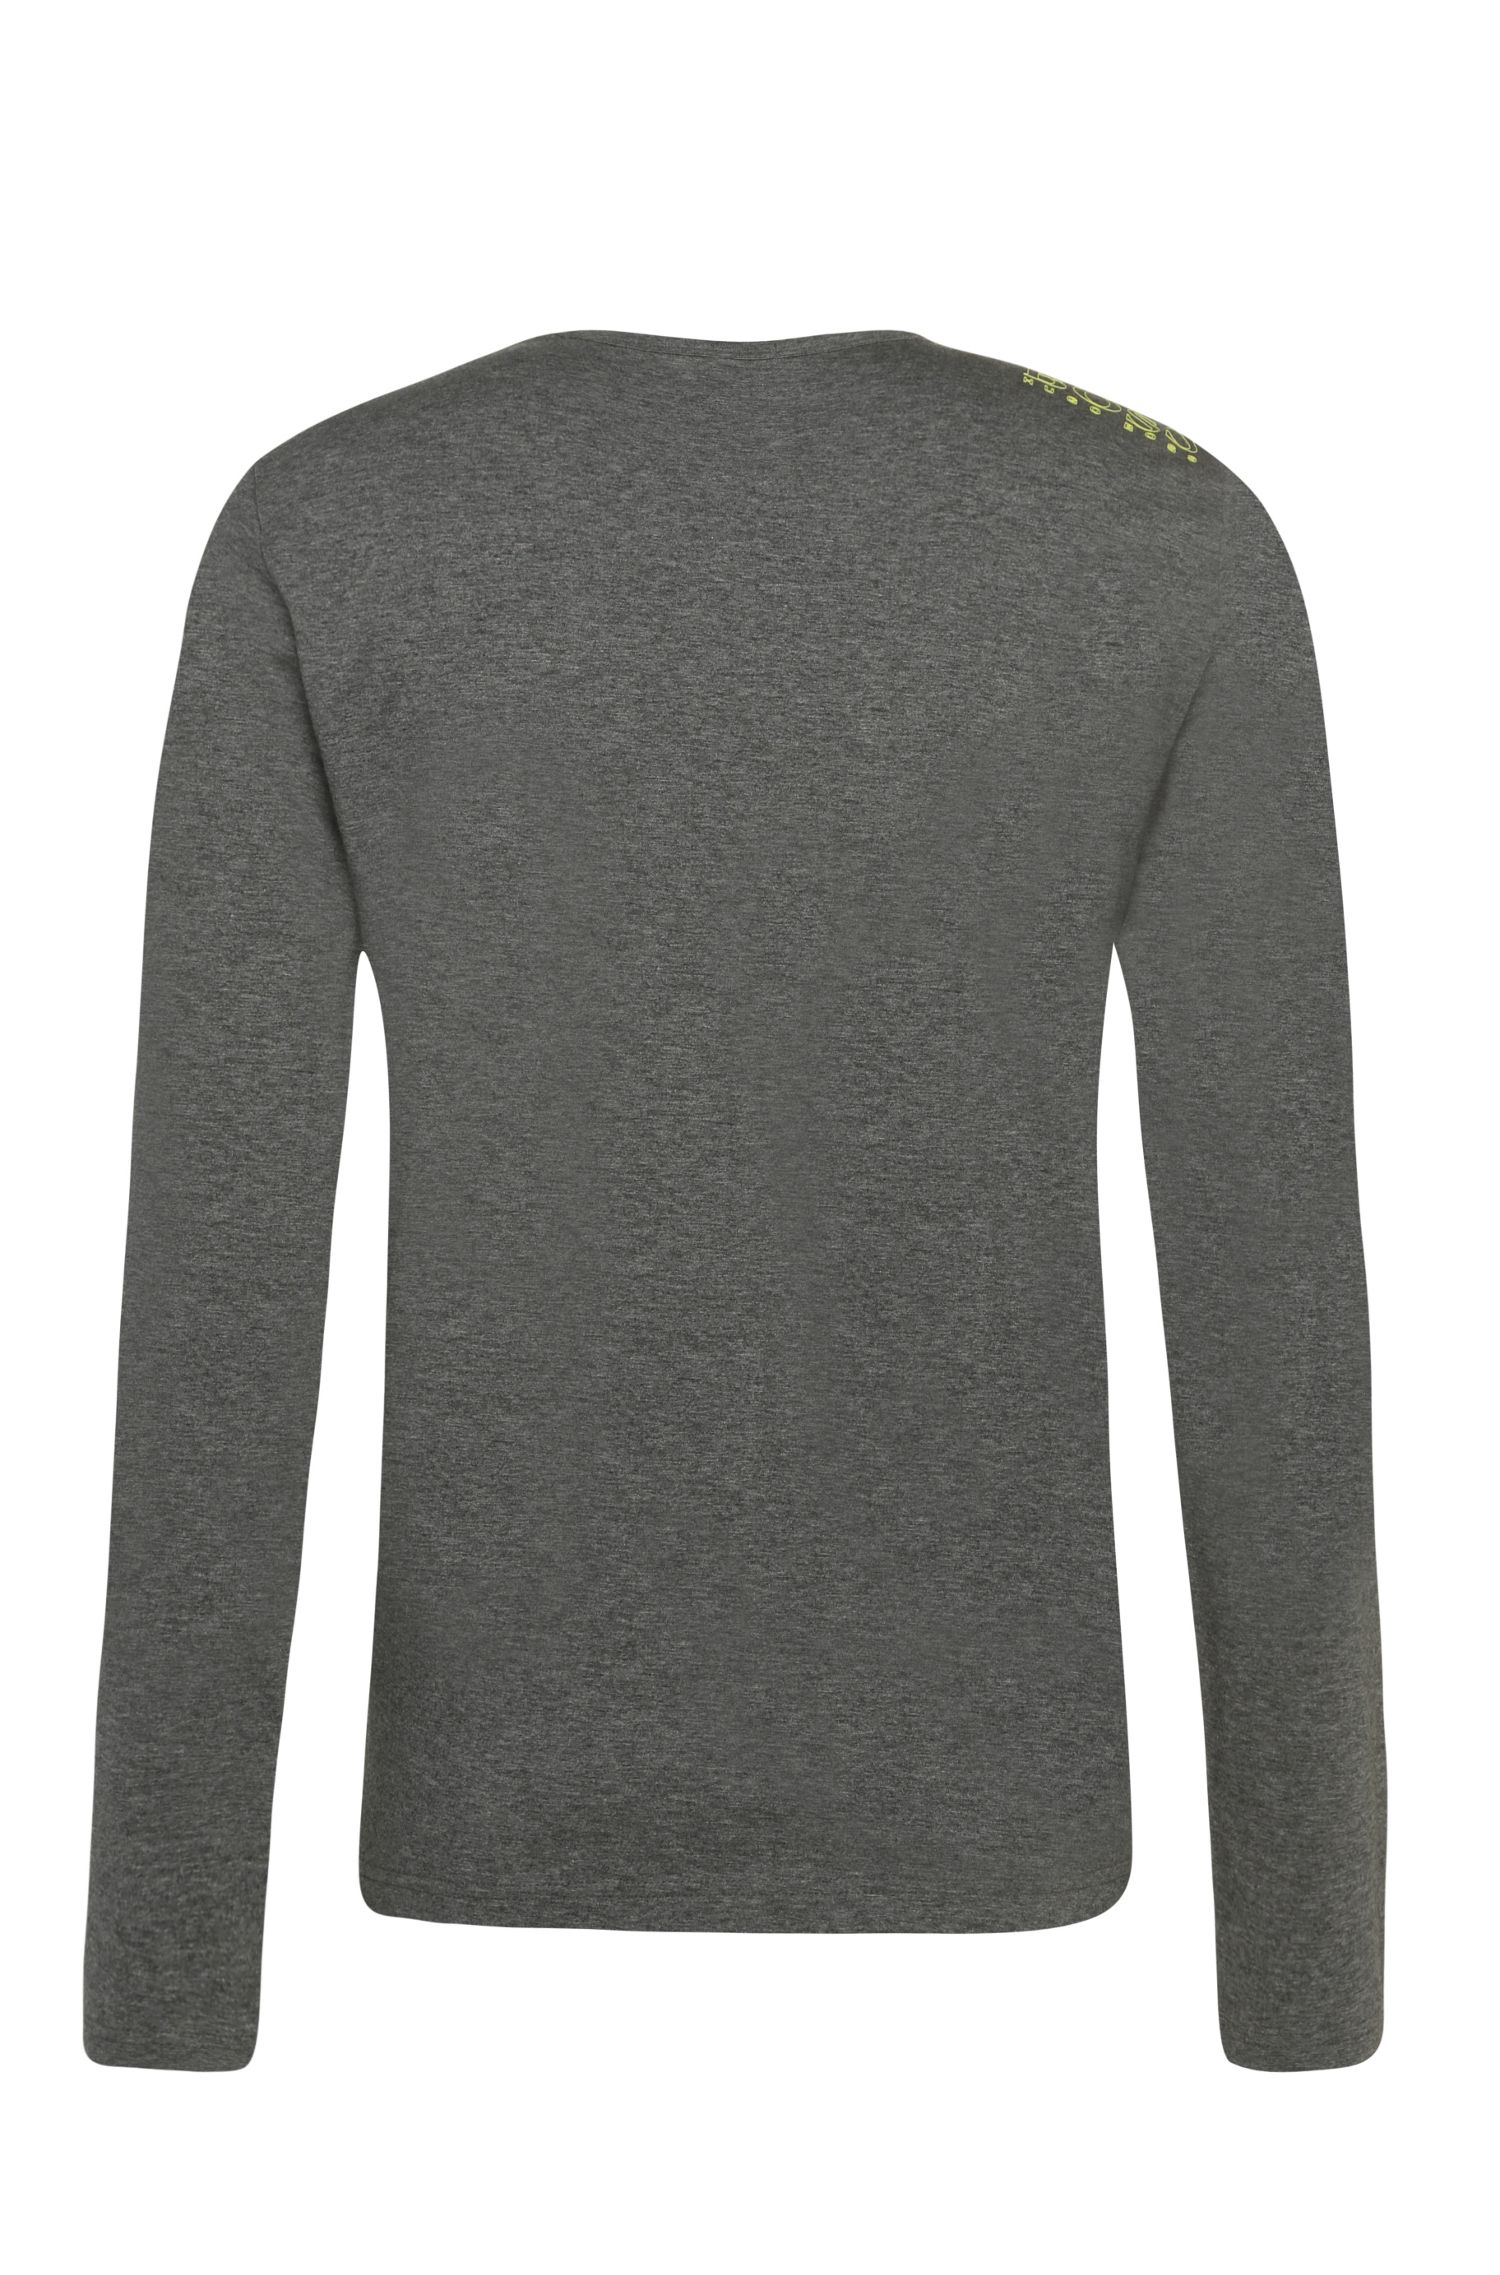 T-shirt Regular Fit à manches longues en coton, Gris